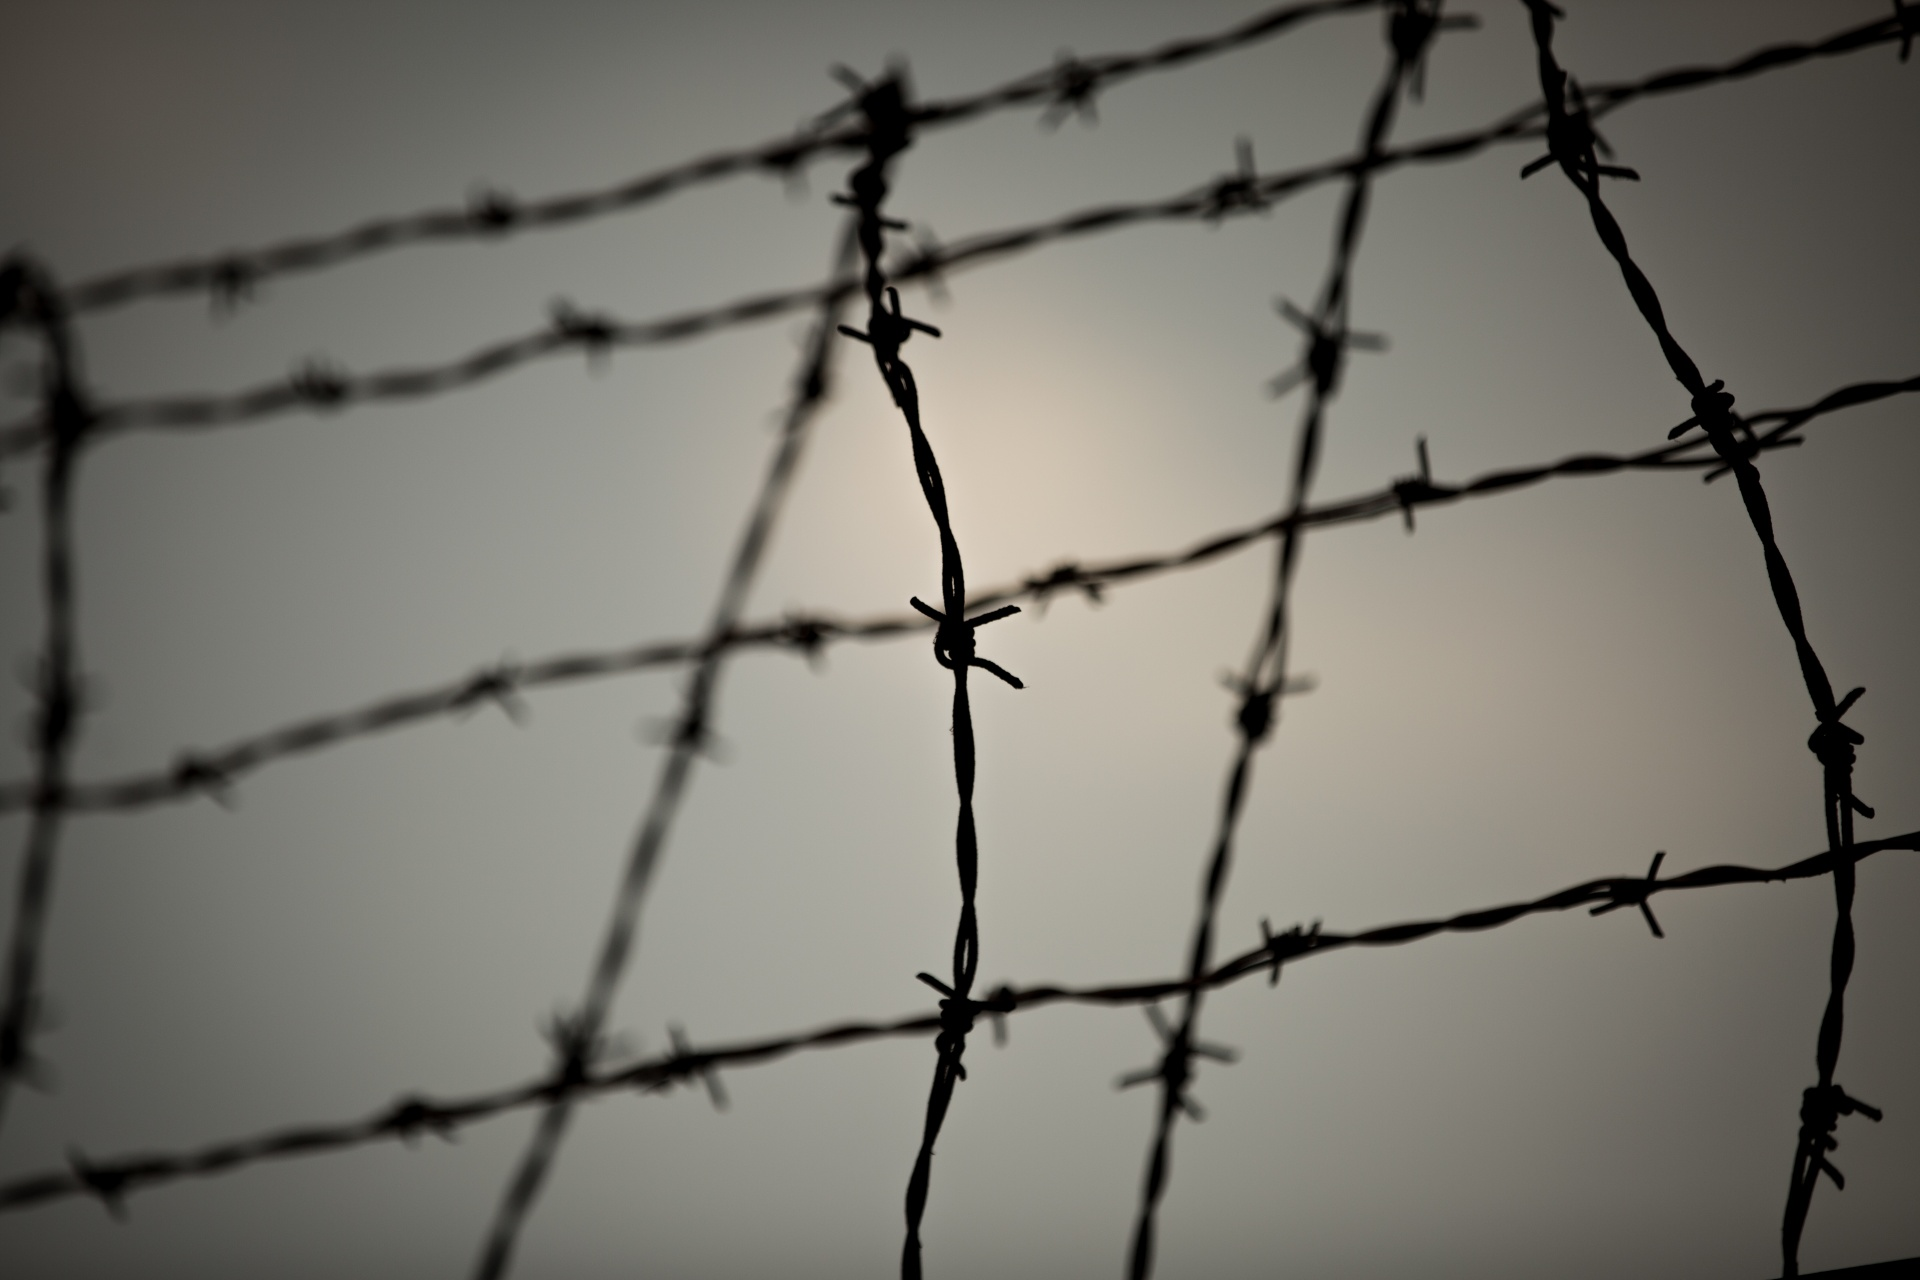 77 Online Barbed Wire Free Stock Photo - Public Domain Pictures